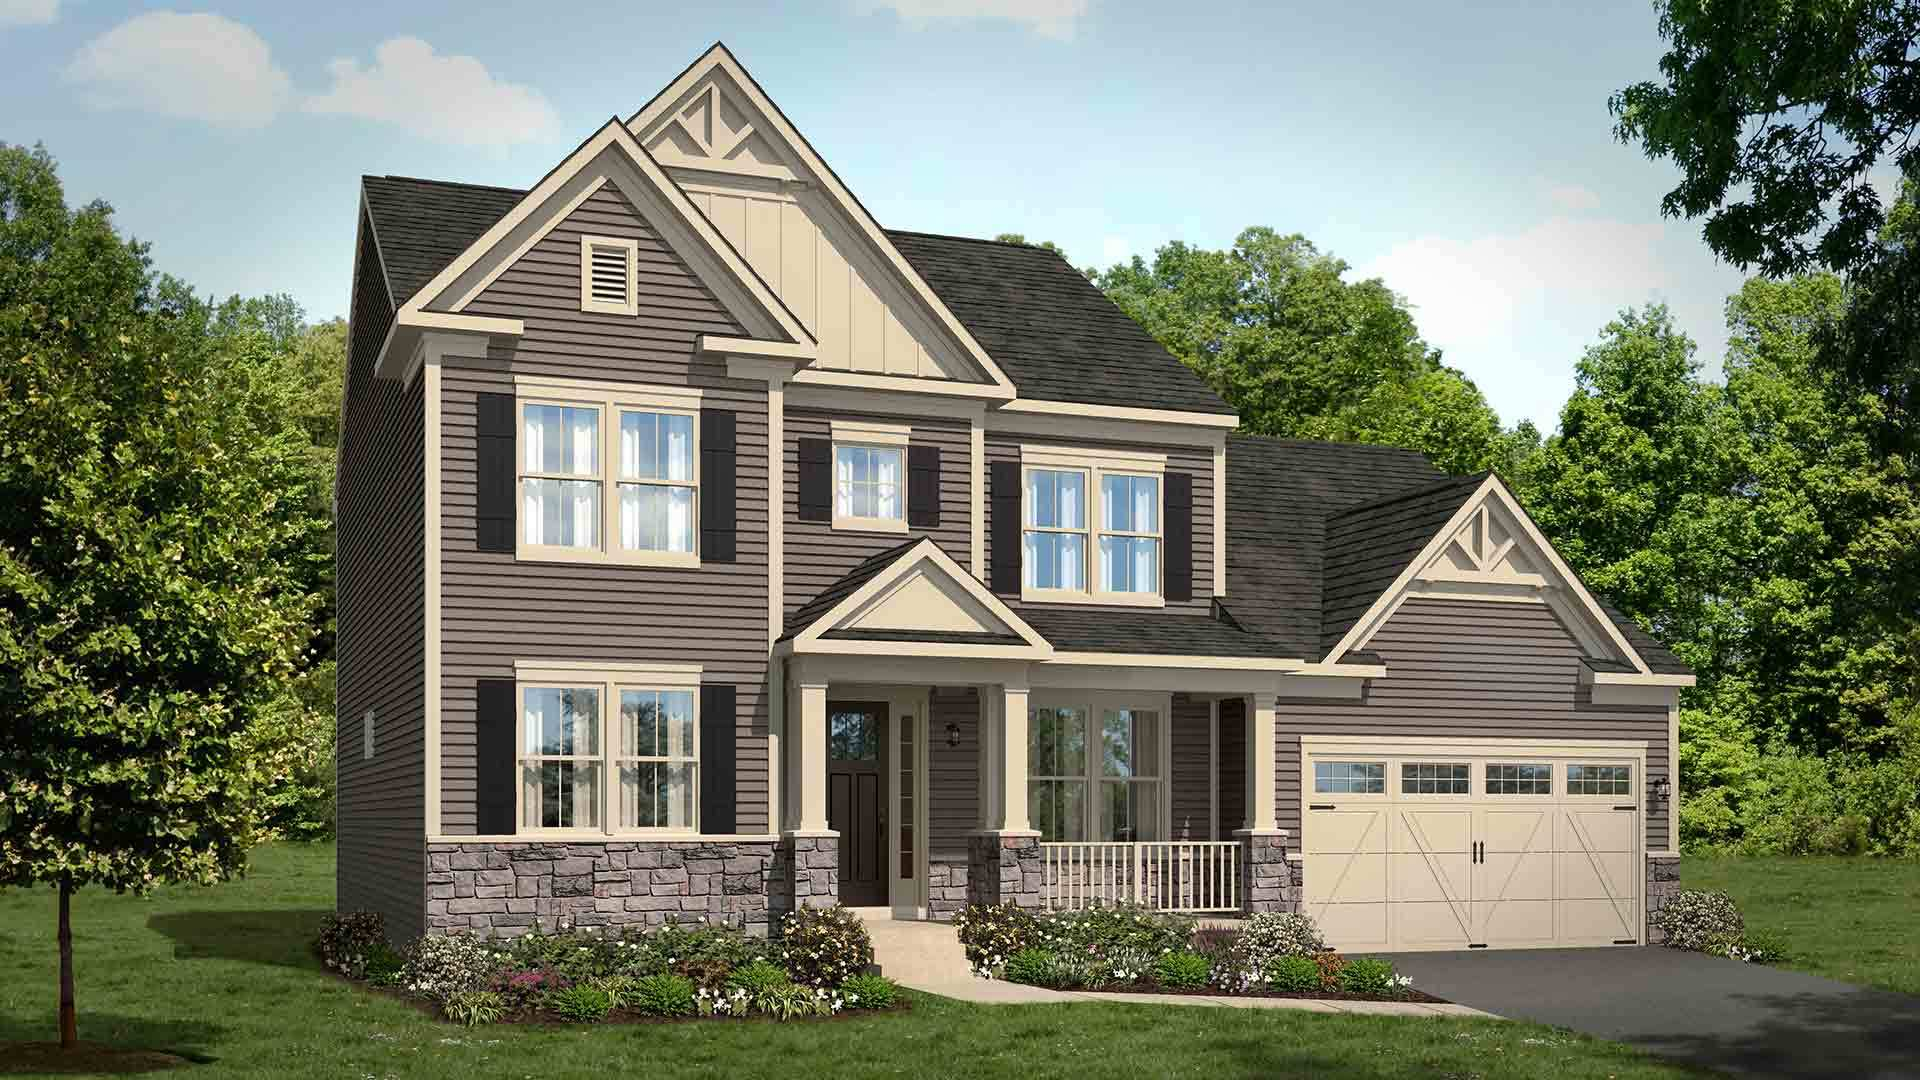 Single Family for Sale at Old Trail - The Travis Birchwood Hill Road Crozet, Virginia 22932 United States